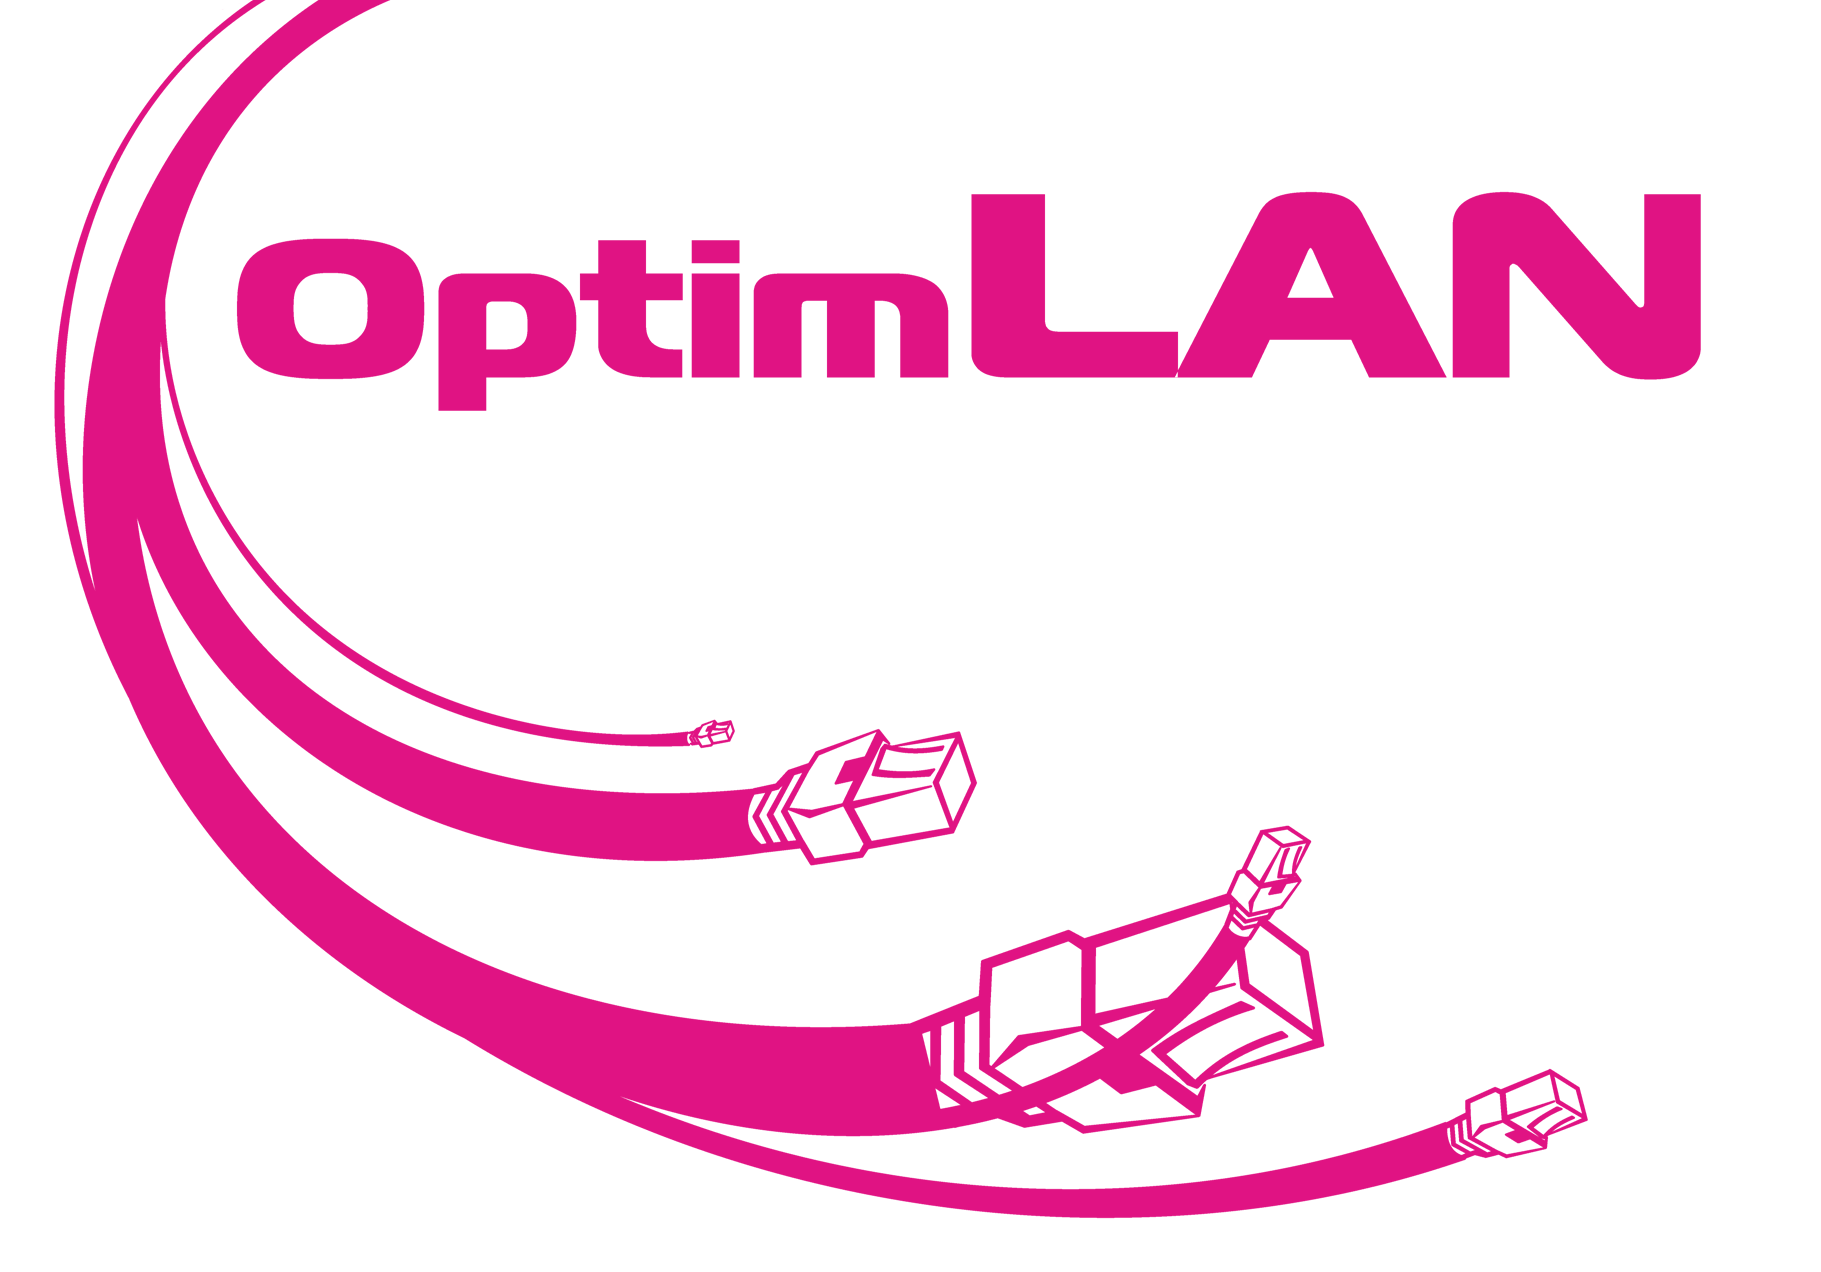 OptimLAN